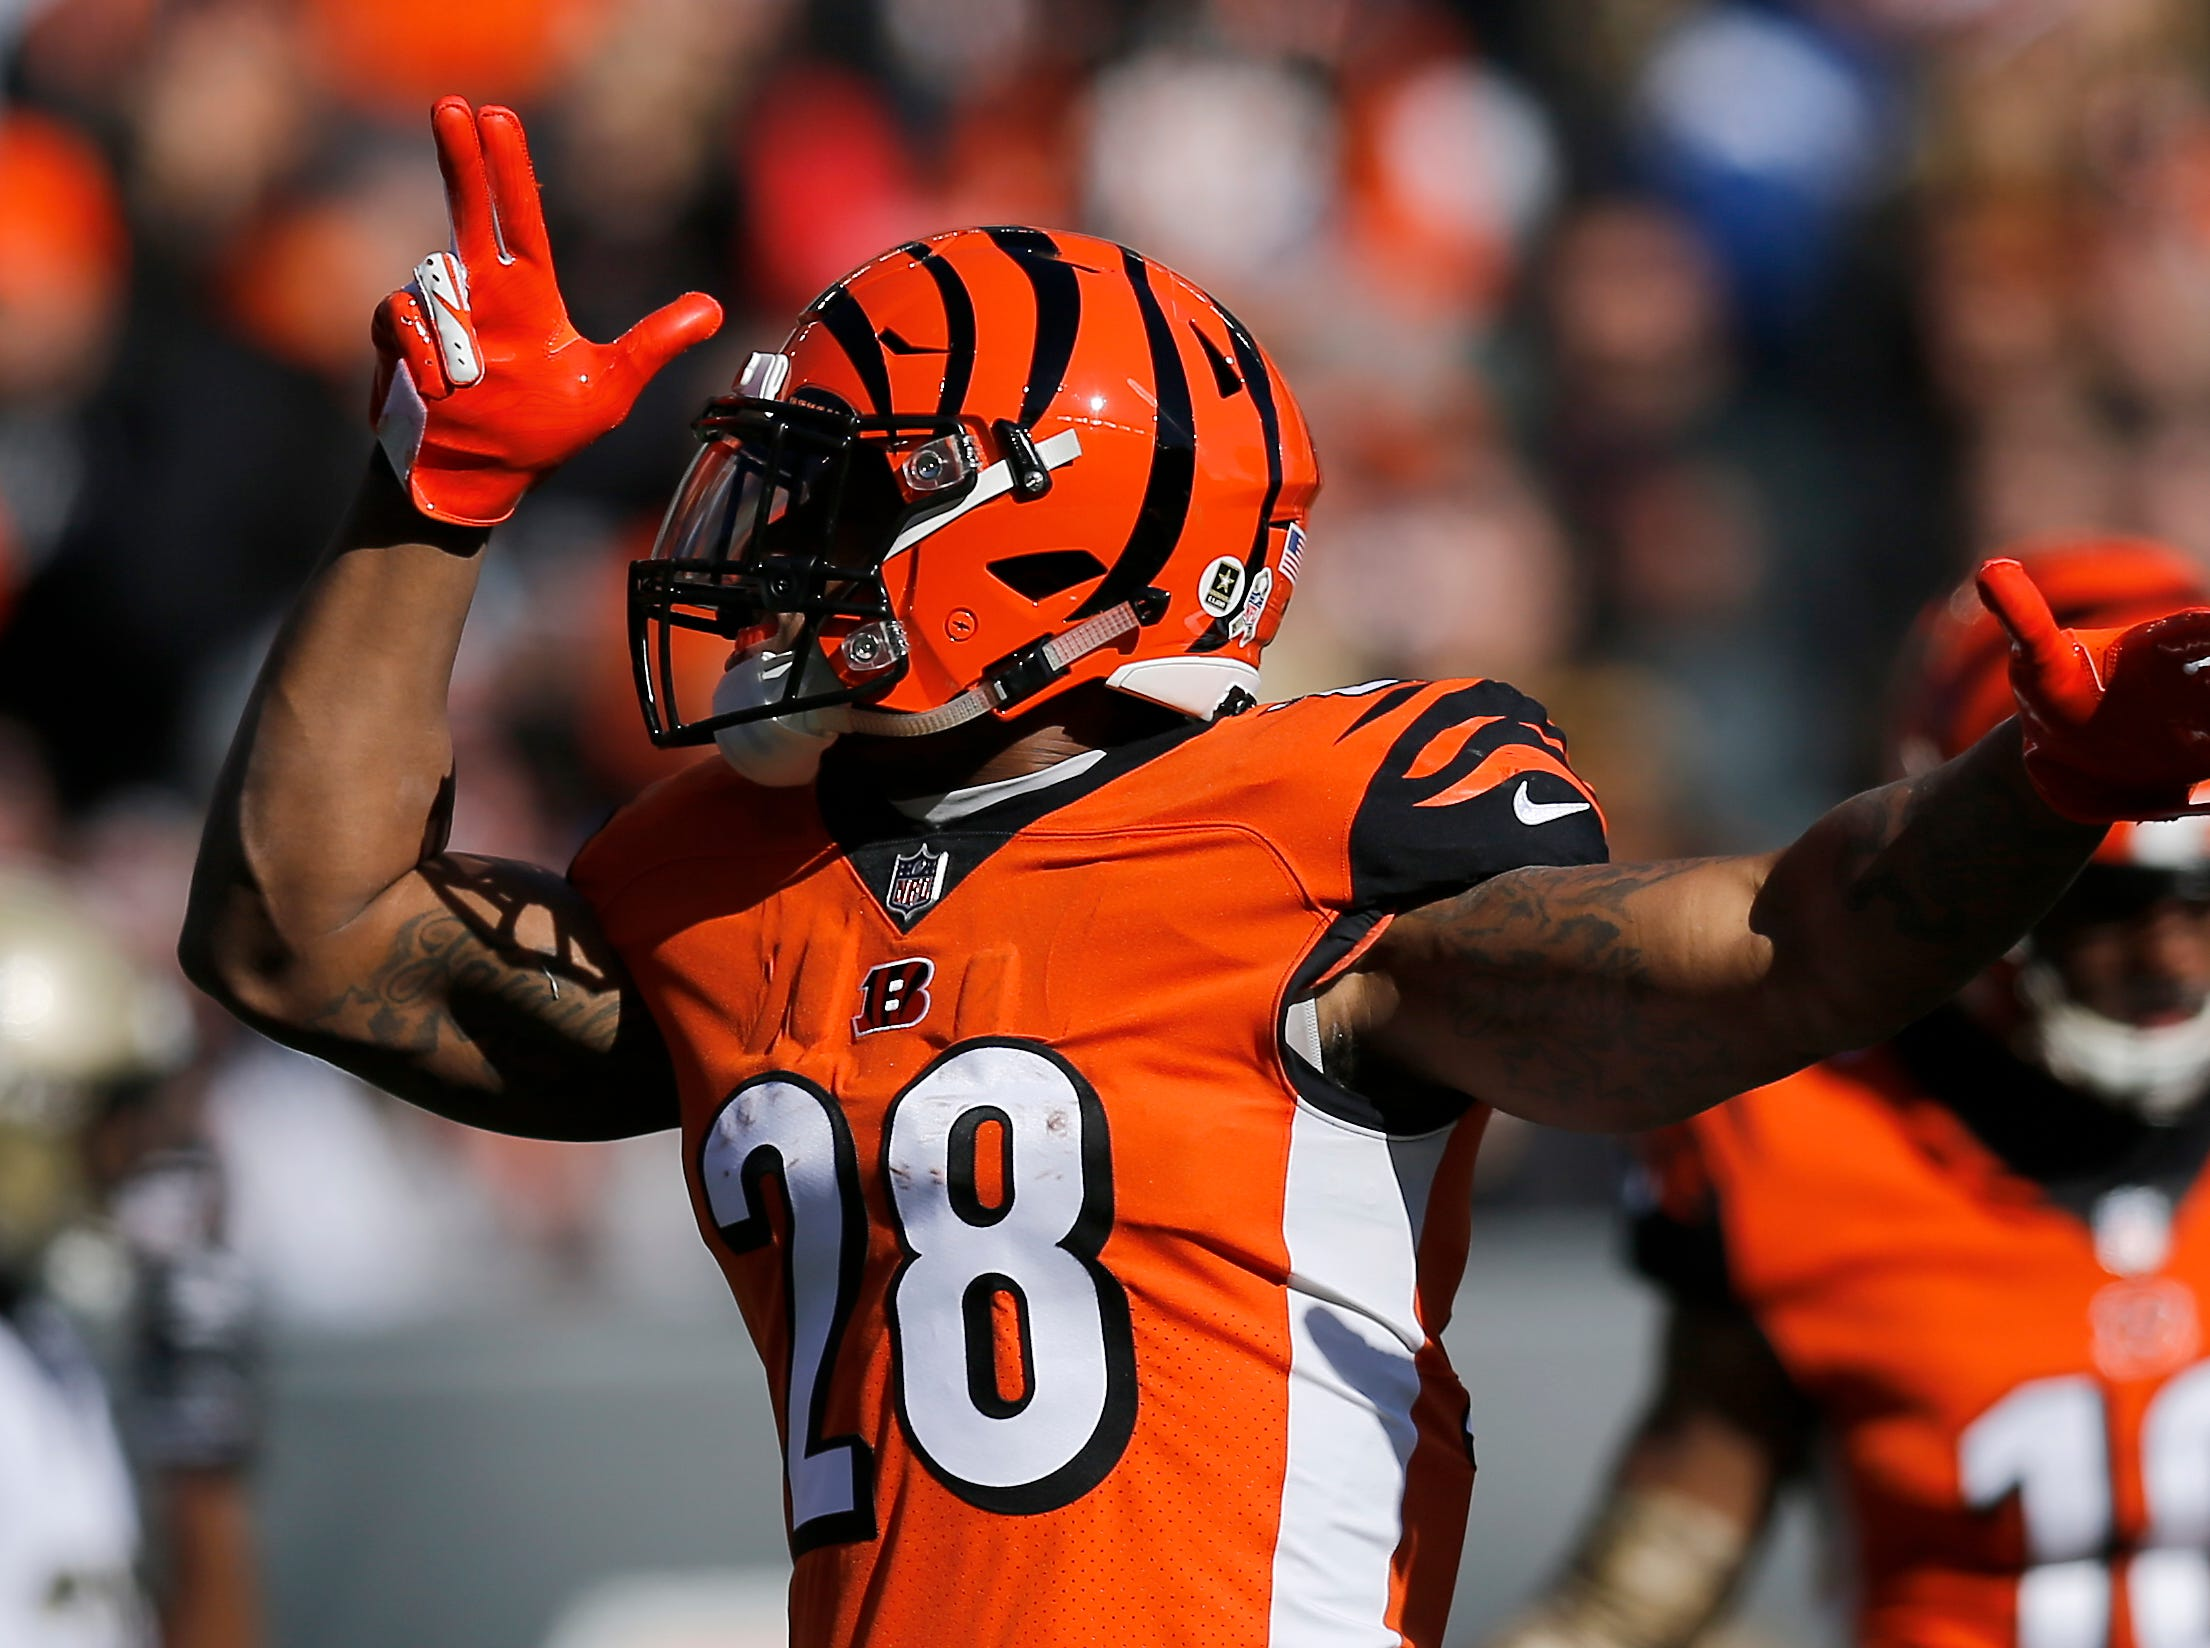 Cincinnati Bengals running back Joe Mixon (28) celebrates after running for a first down in the first quarter of the NFL Week 10 game between the Cincinnati Bengals and the New Orleans Saints at Paul Brown Stadium in downtown Cincinnati on Sunday, Nov. 11, 2018. The Saints led 35-7 at halftime.